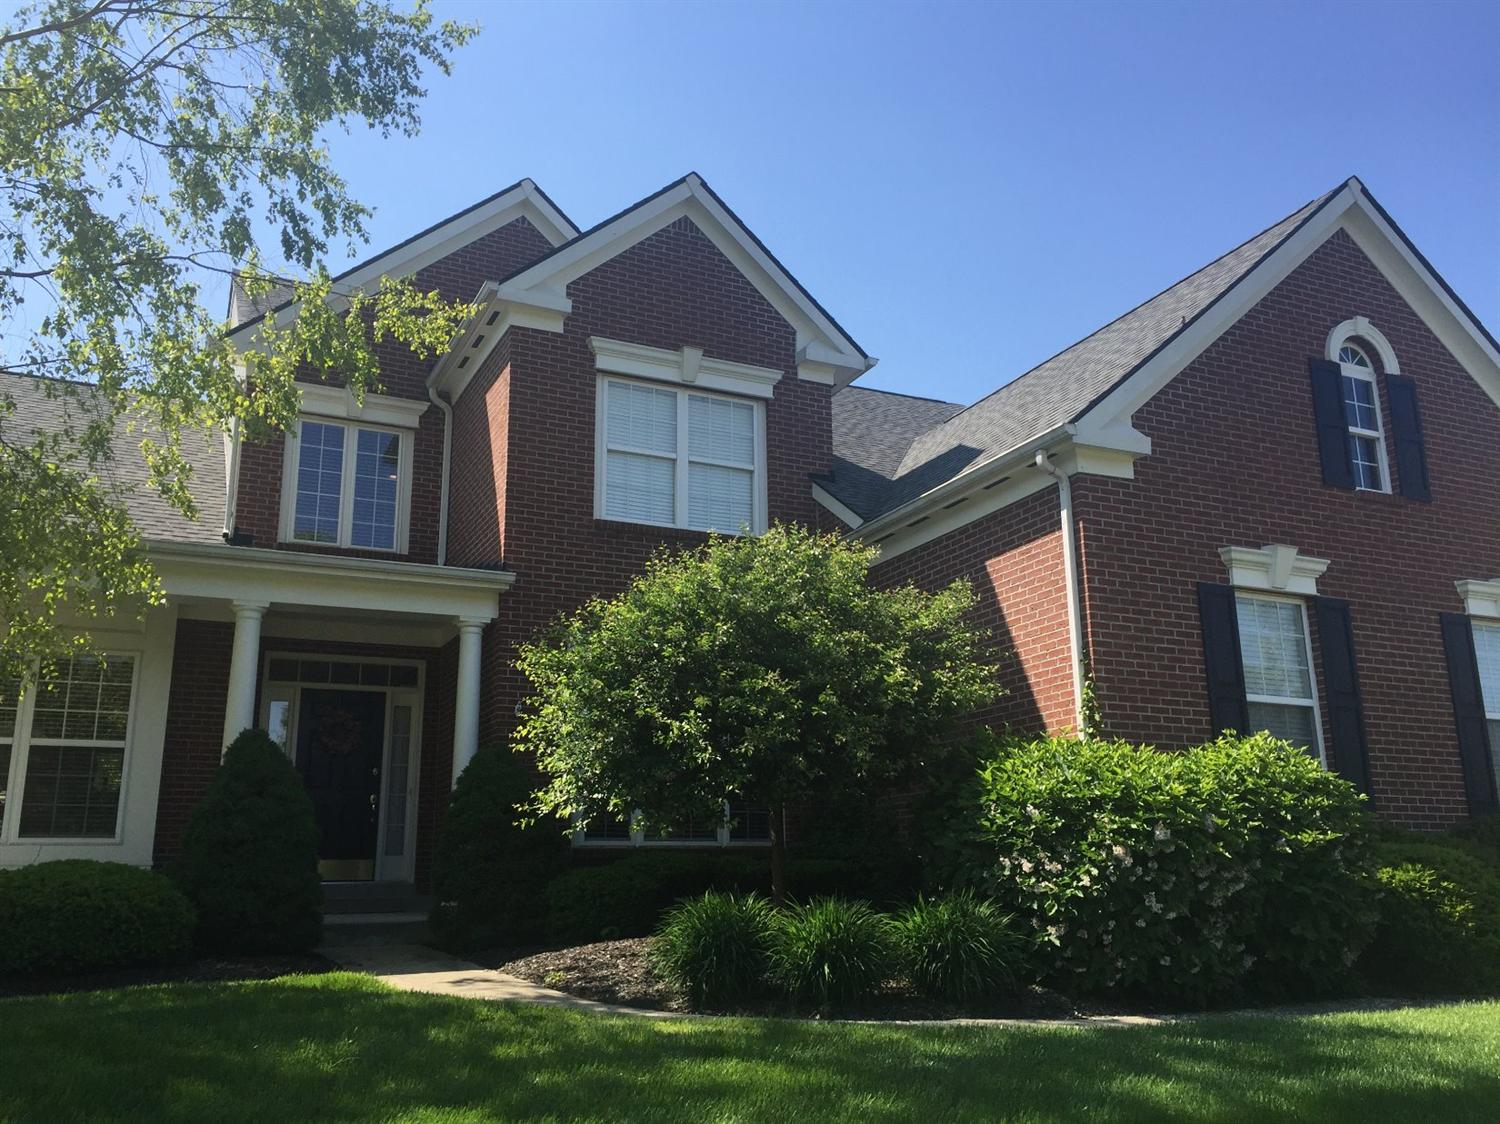 4340 Wilderness Way, Mason, OH 45040